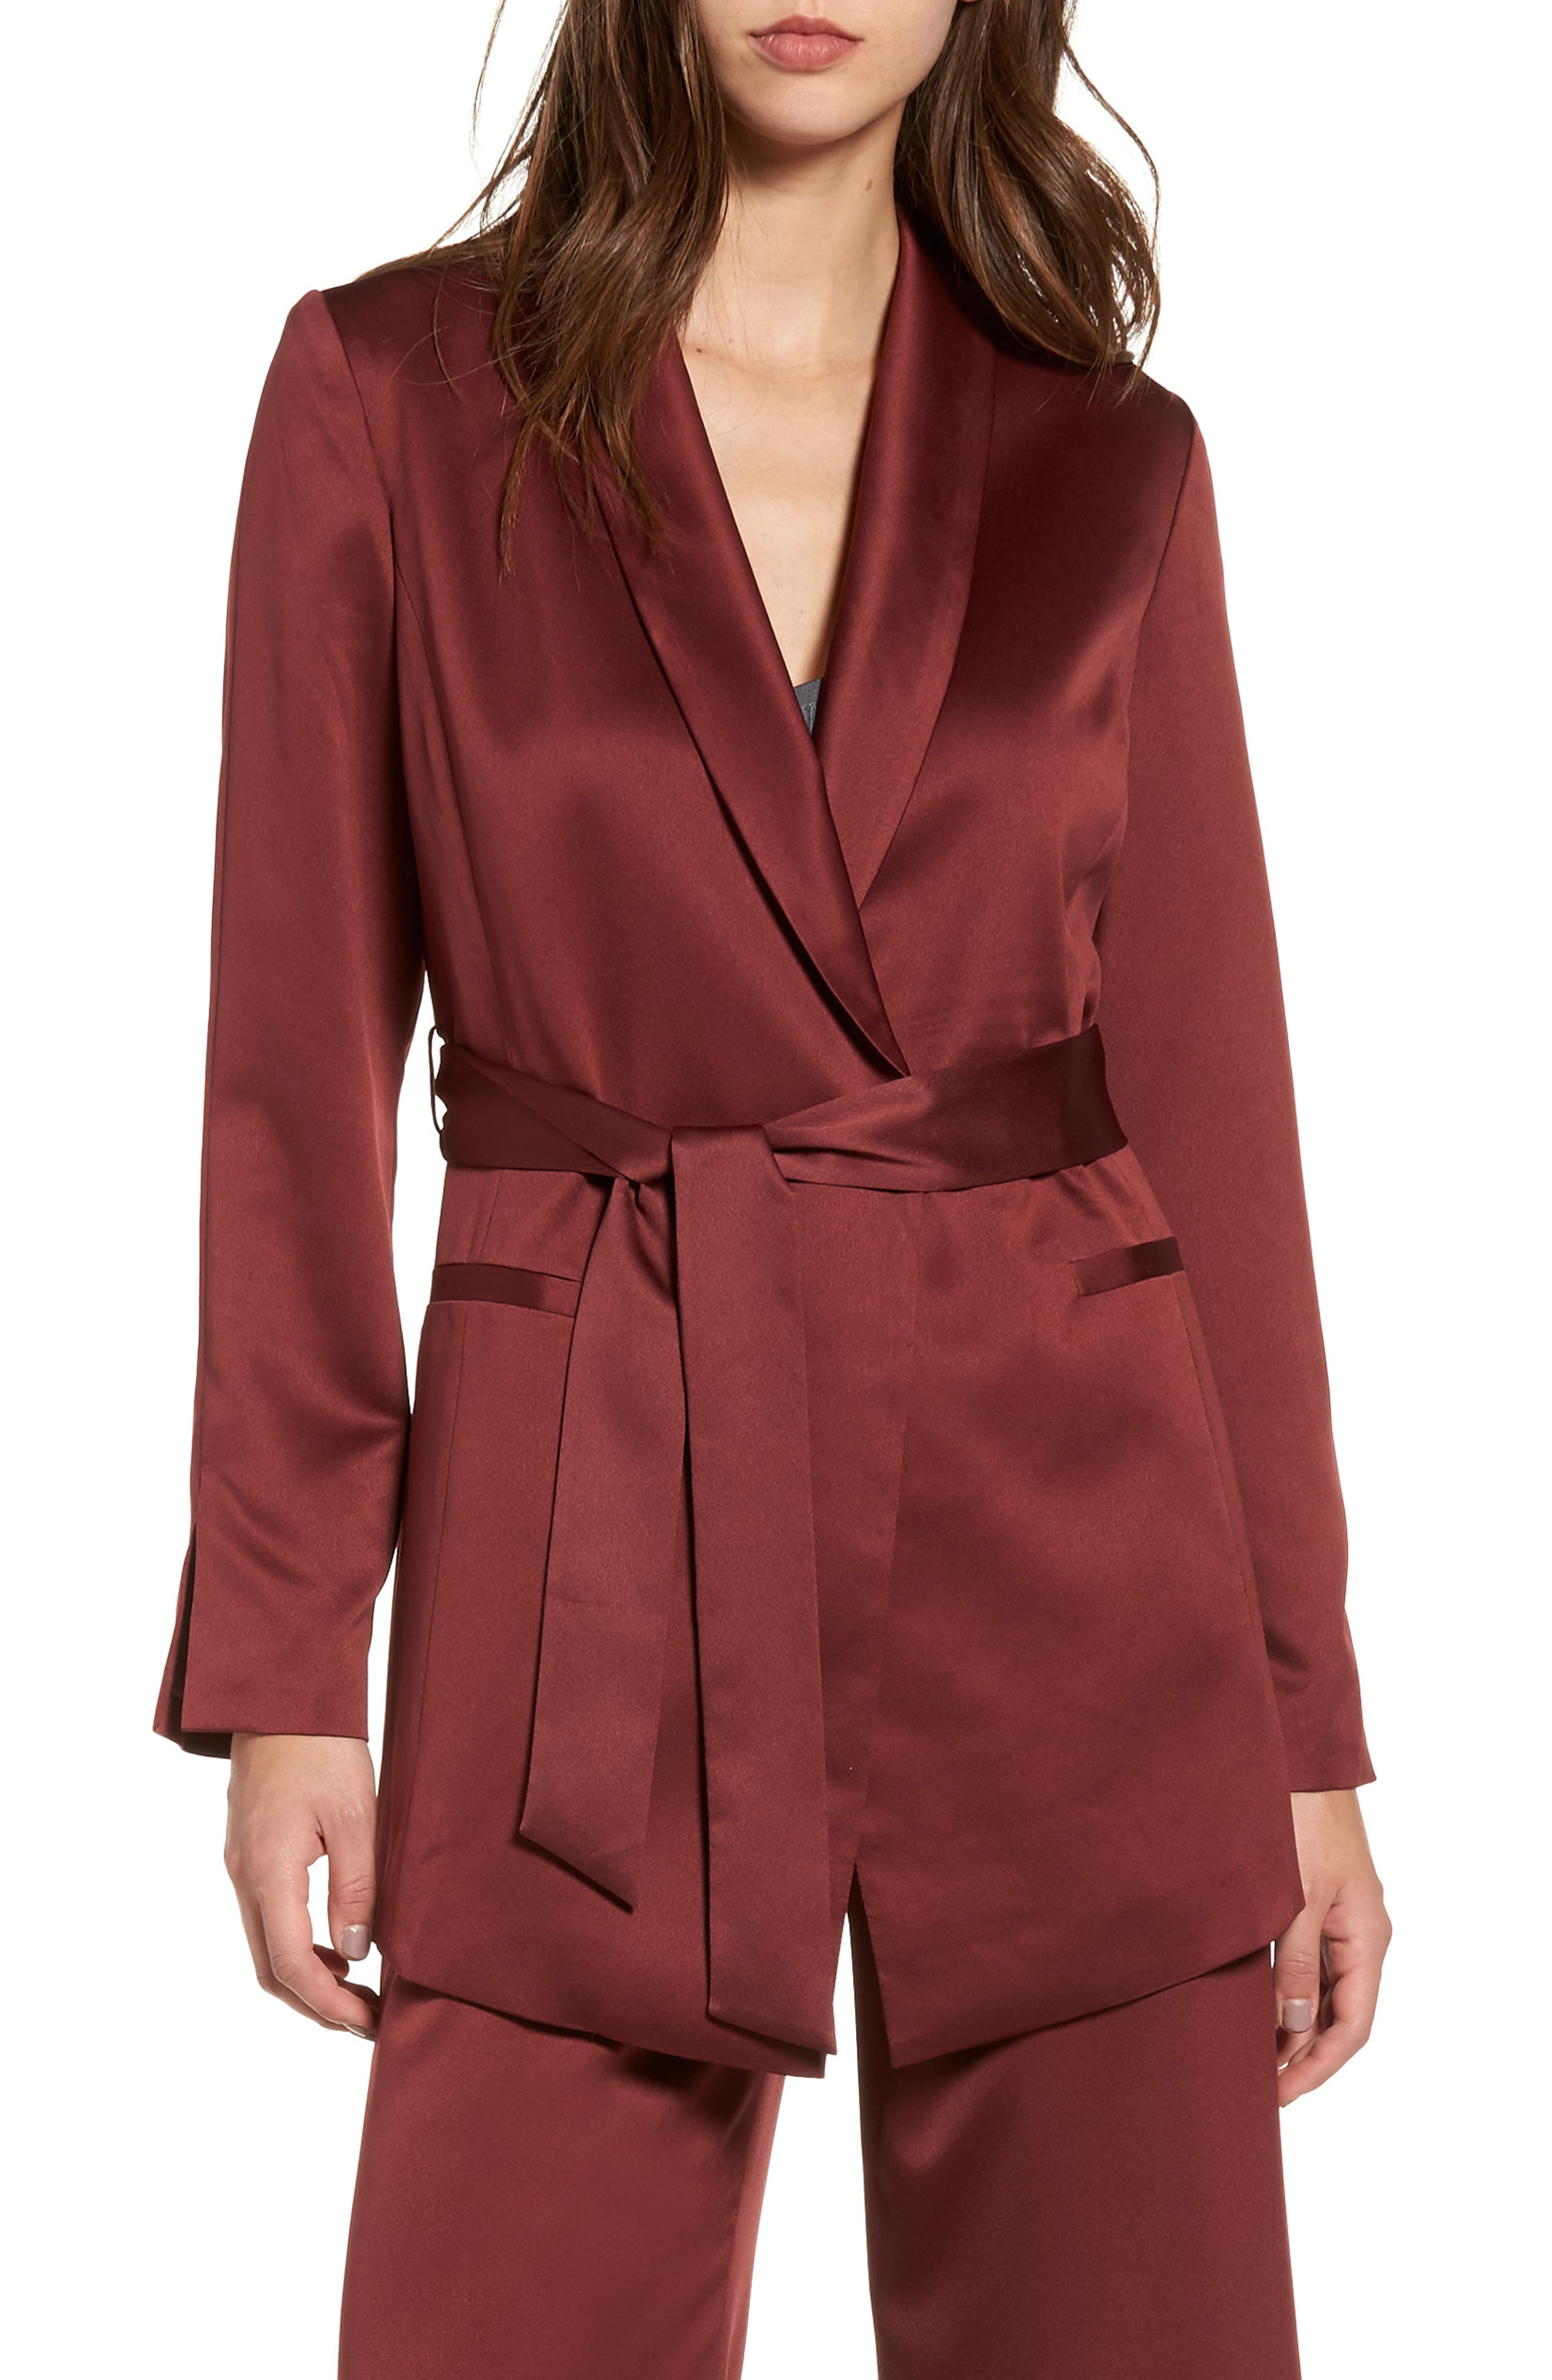 LEITH, Belted Satin Jacket, Main thumbnail 1, color, 601